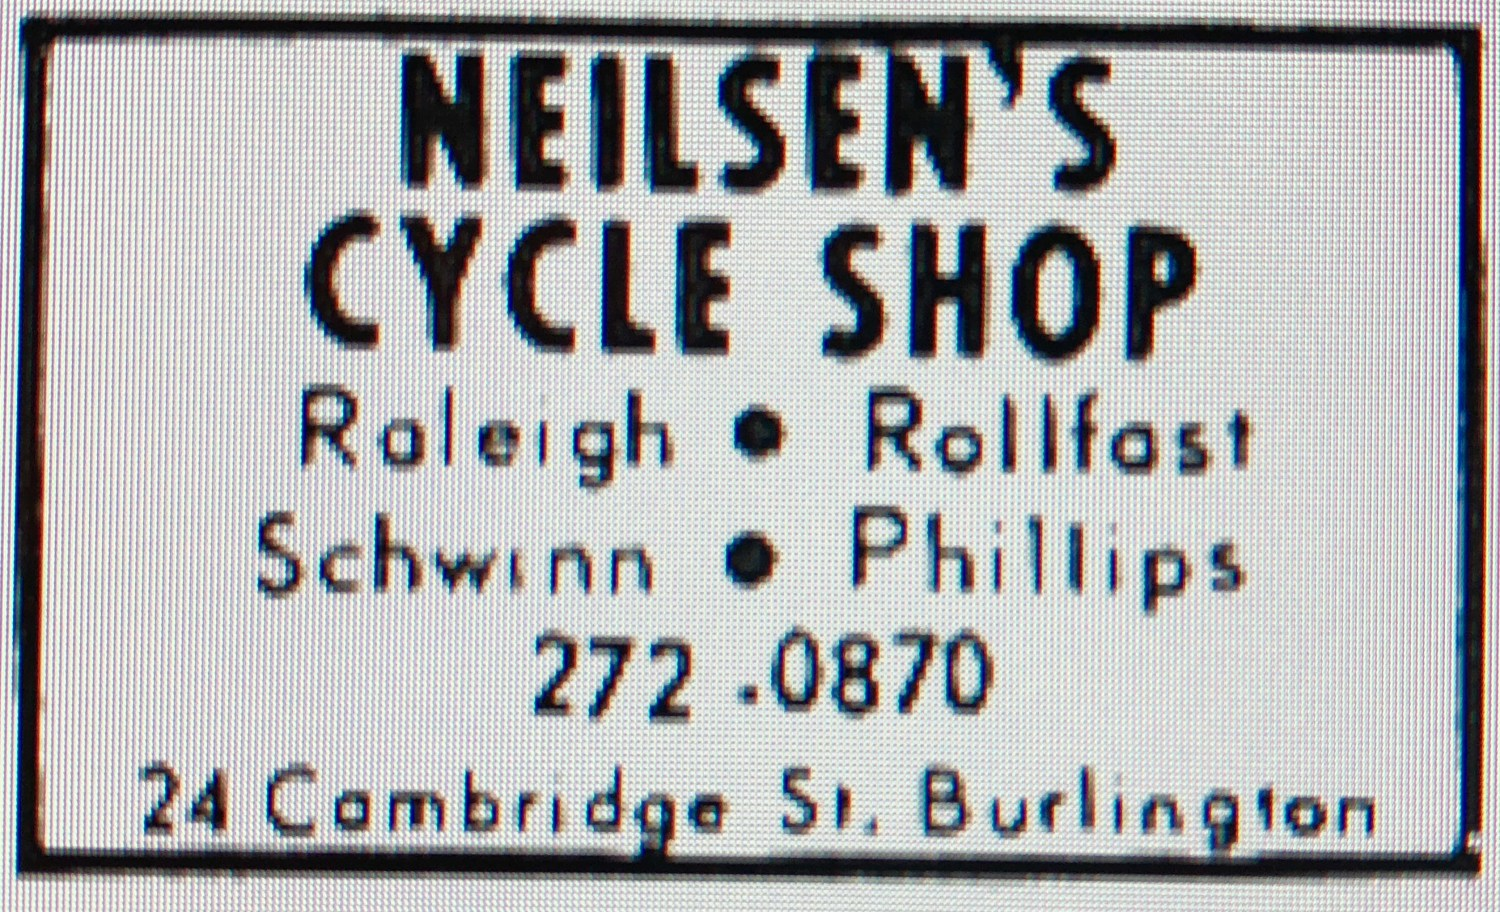 Neilsen's Cycle Shop Burlington MA